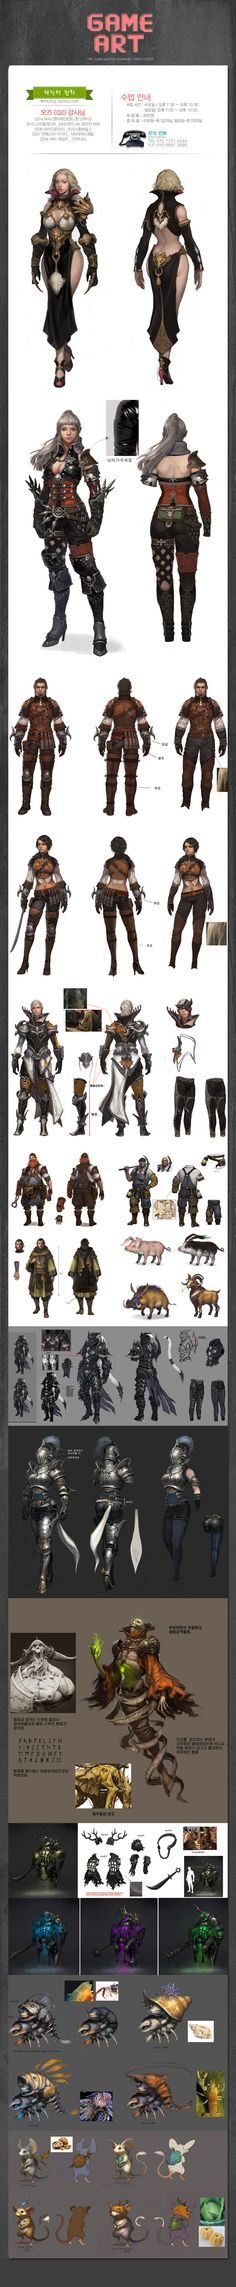 Clothing Armor Game Design armour | NOT OUR ART - Please click artwork for source | WRITING INSPIRATION for Dungeons and Dragons DND Pathfinder PFRPG Warhammer 40k Star Wars Shadowrun Call of Cthulhu and other d20 roleplaying fantasy science fiction scifi horror location equipment monster character game design | Create your own RPG Books w/ www.rpgbard.com